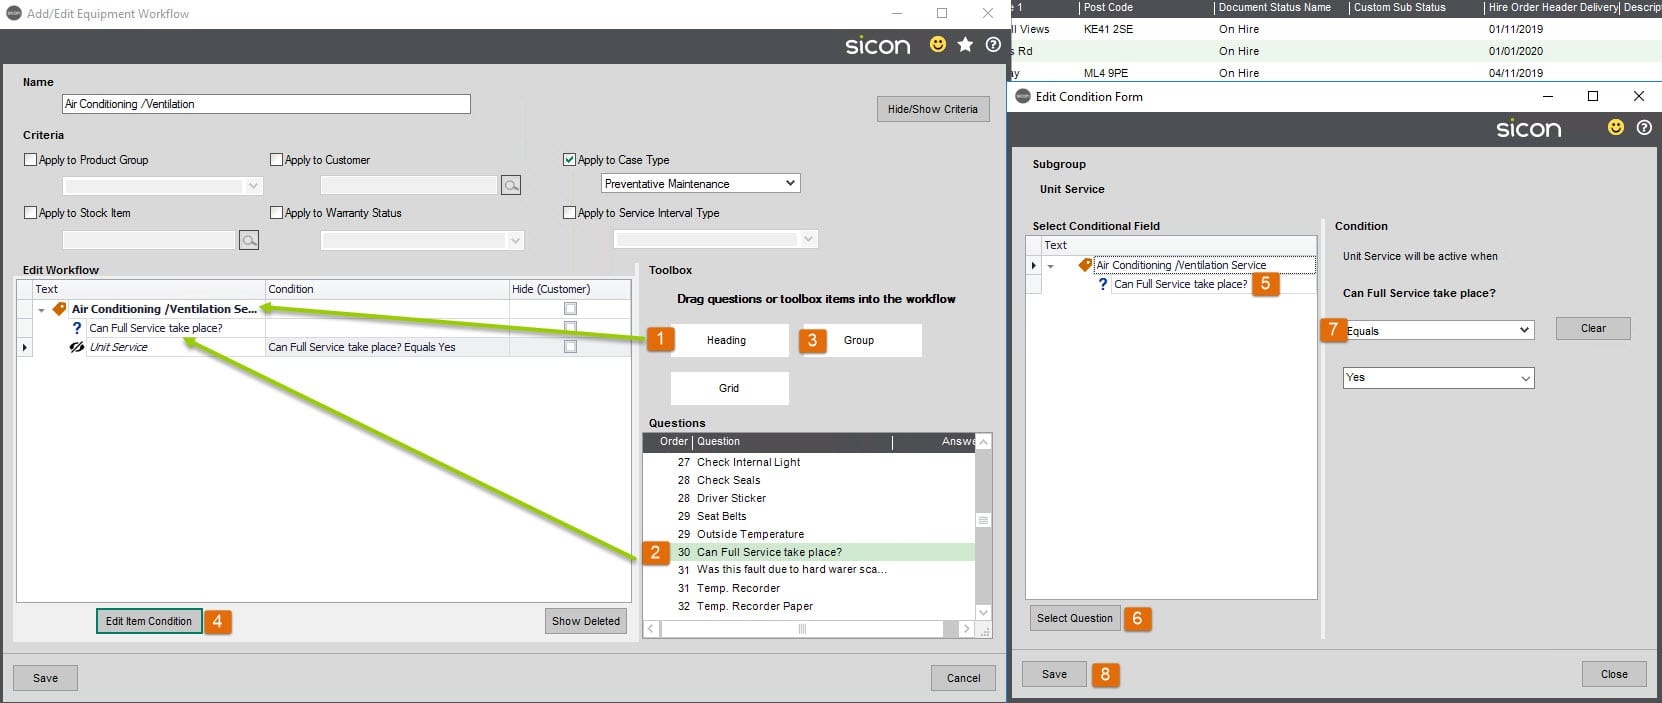 Sicon Service Help and User Guide - 11.8.1 screen 8